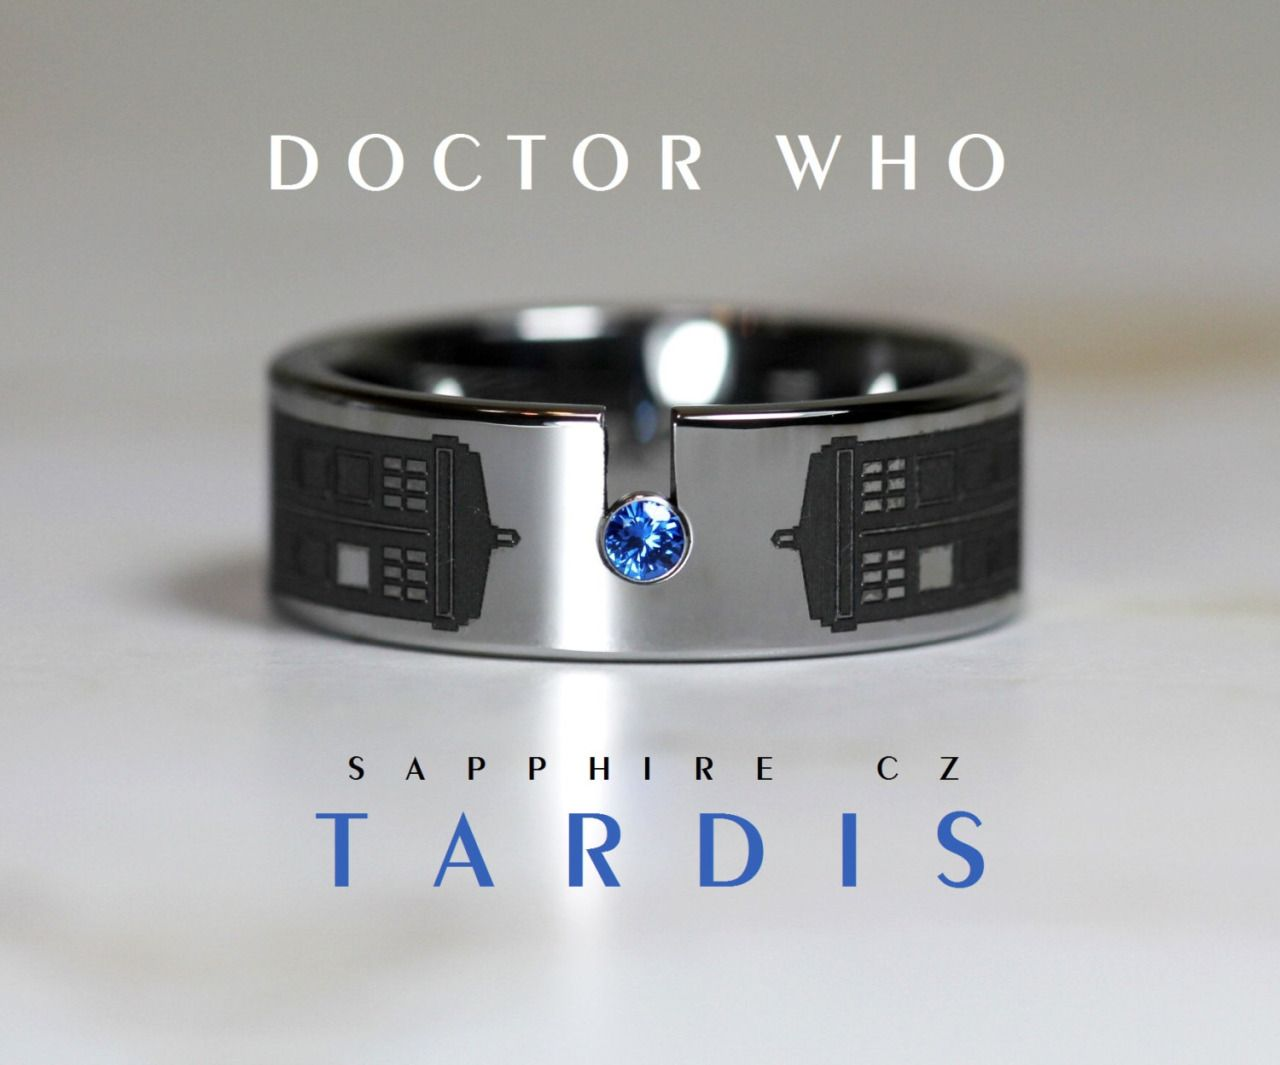 Misfit Wedding Doctor Who Jewelry Doctor Who Ring Doctor Who Merchandise